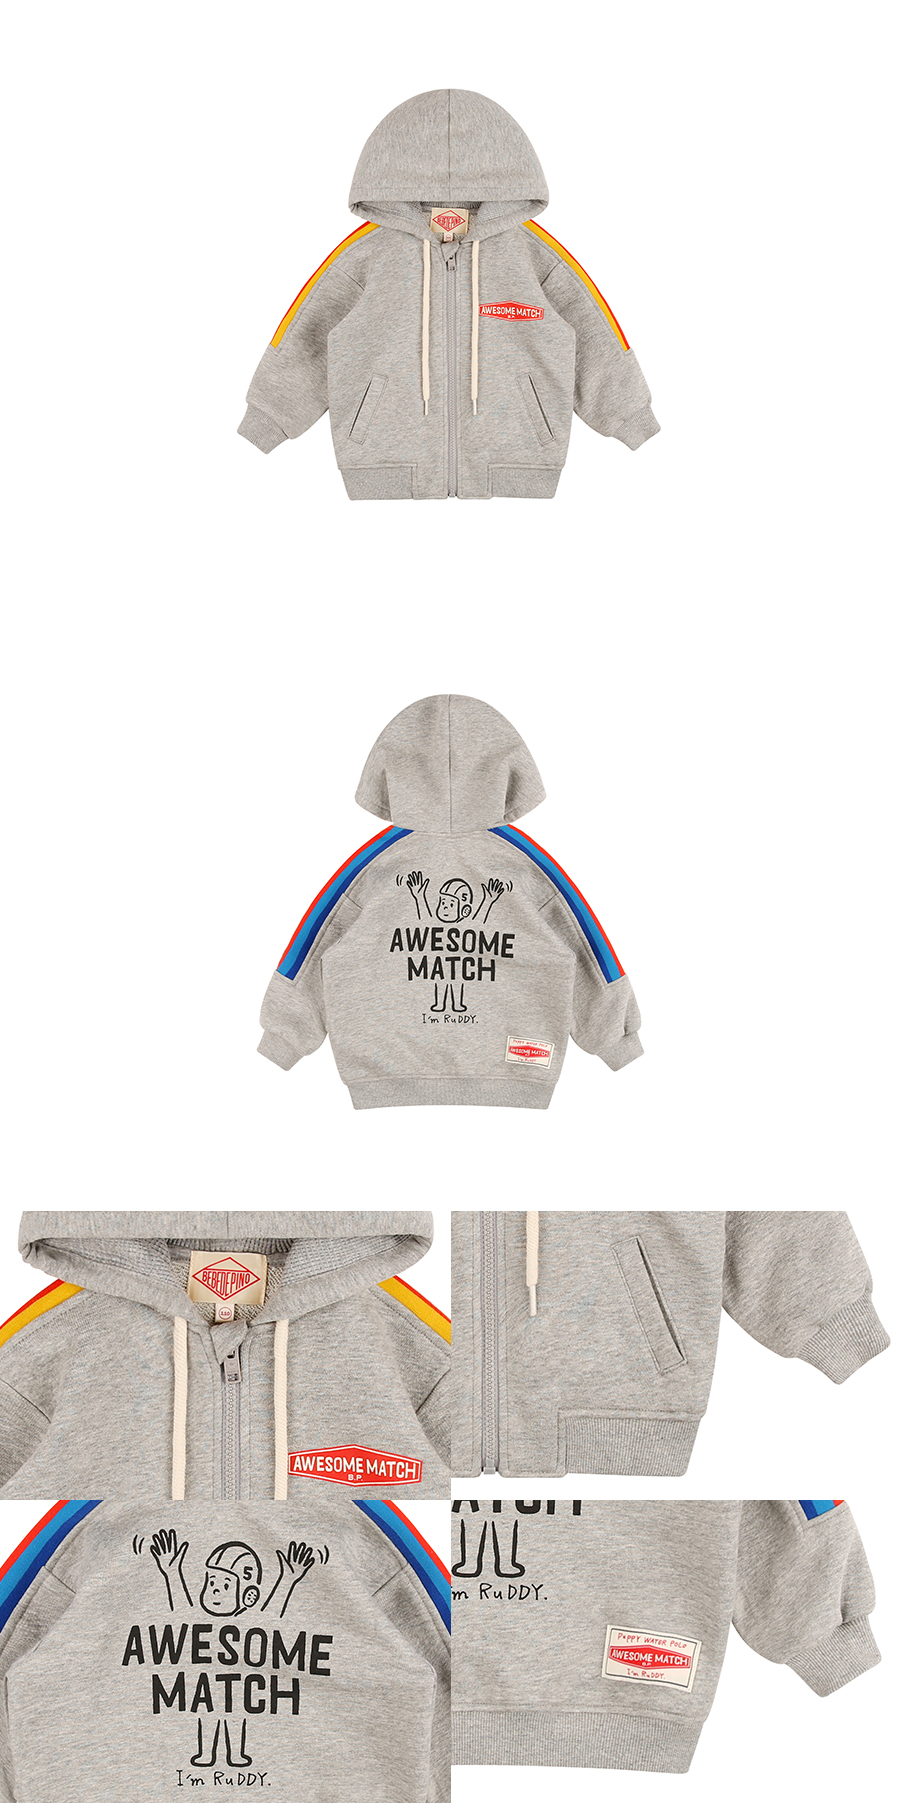 Awesome match baby rainbow zip up jacket 상세 이미지